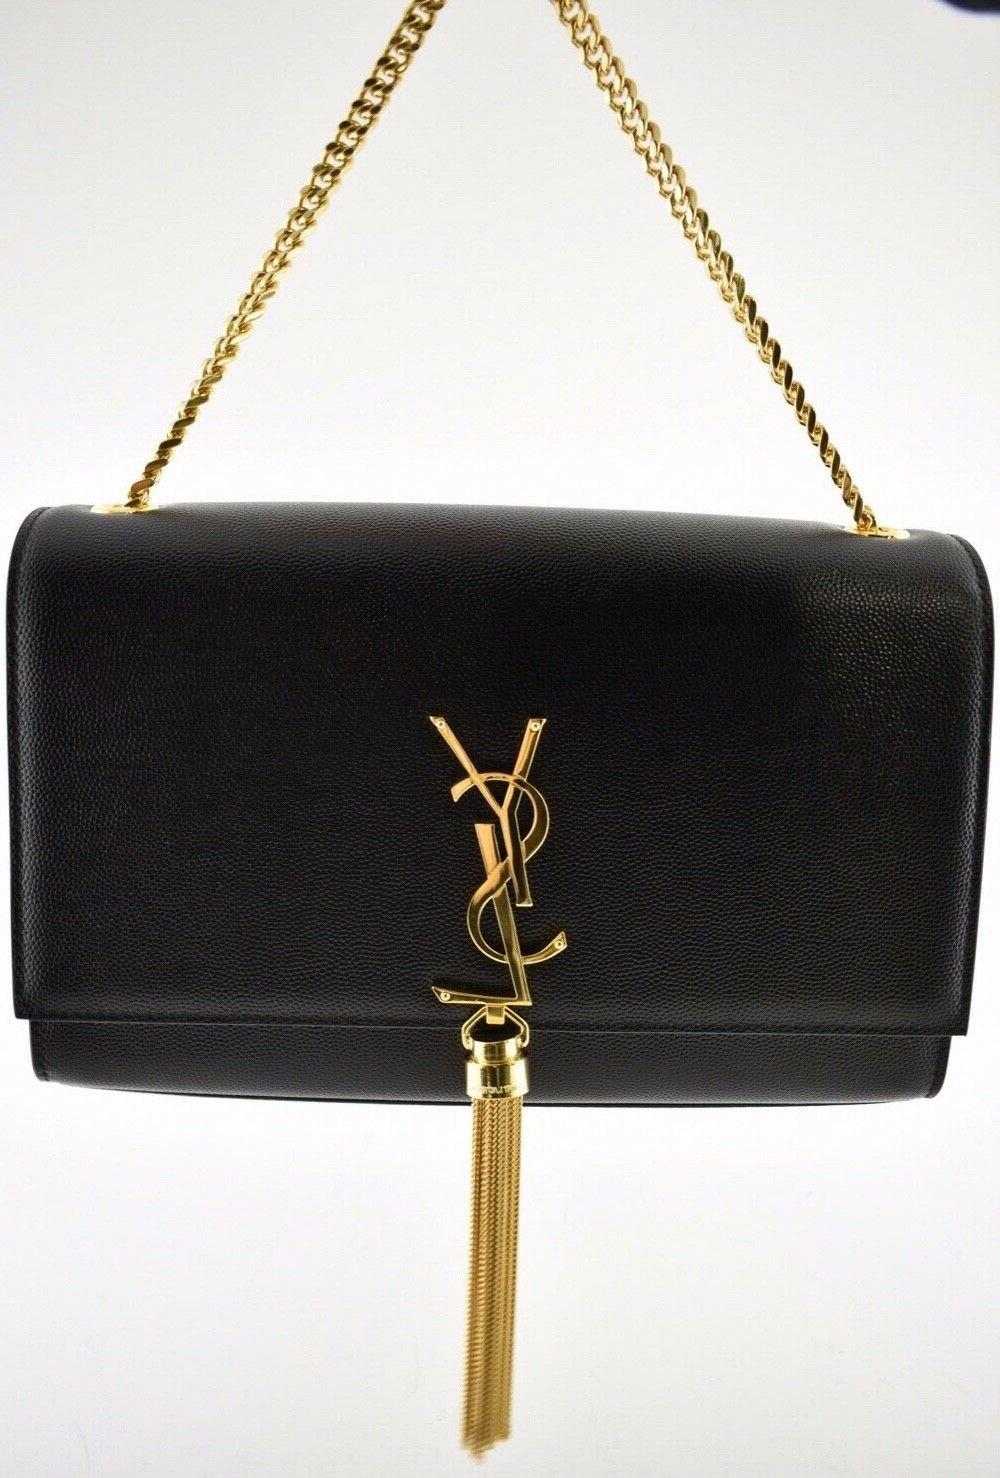 Saint Kate Black Caviar Gold Tassel Wallet